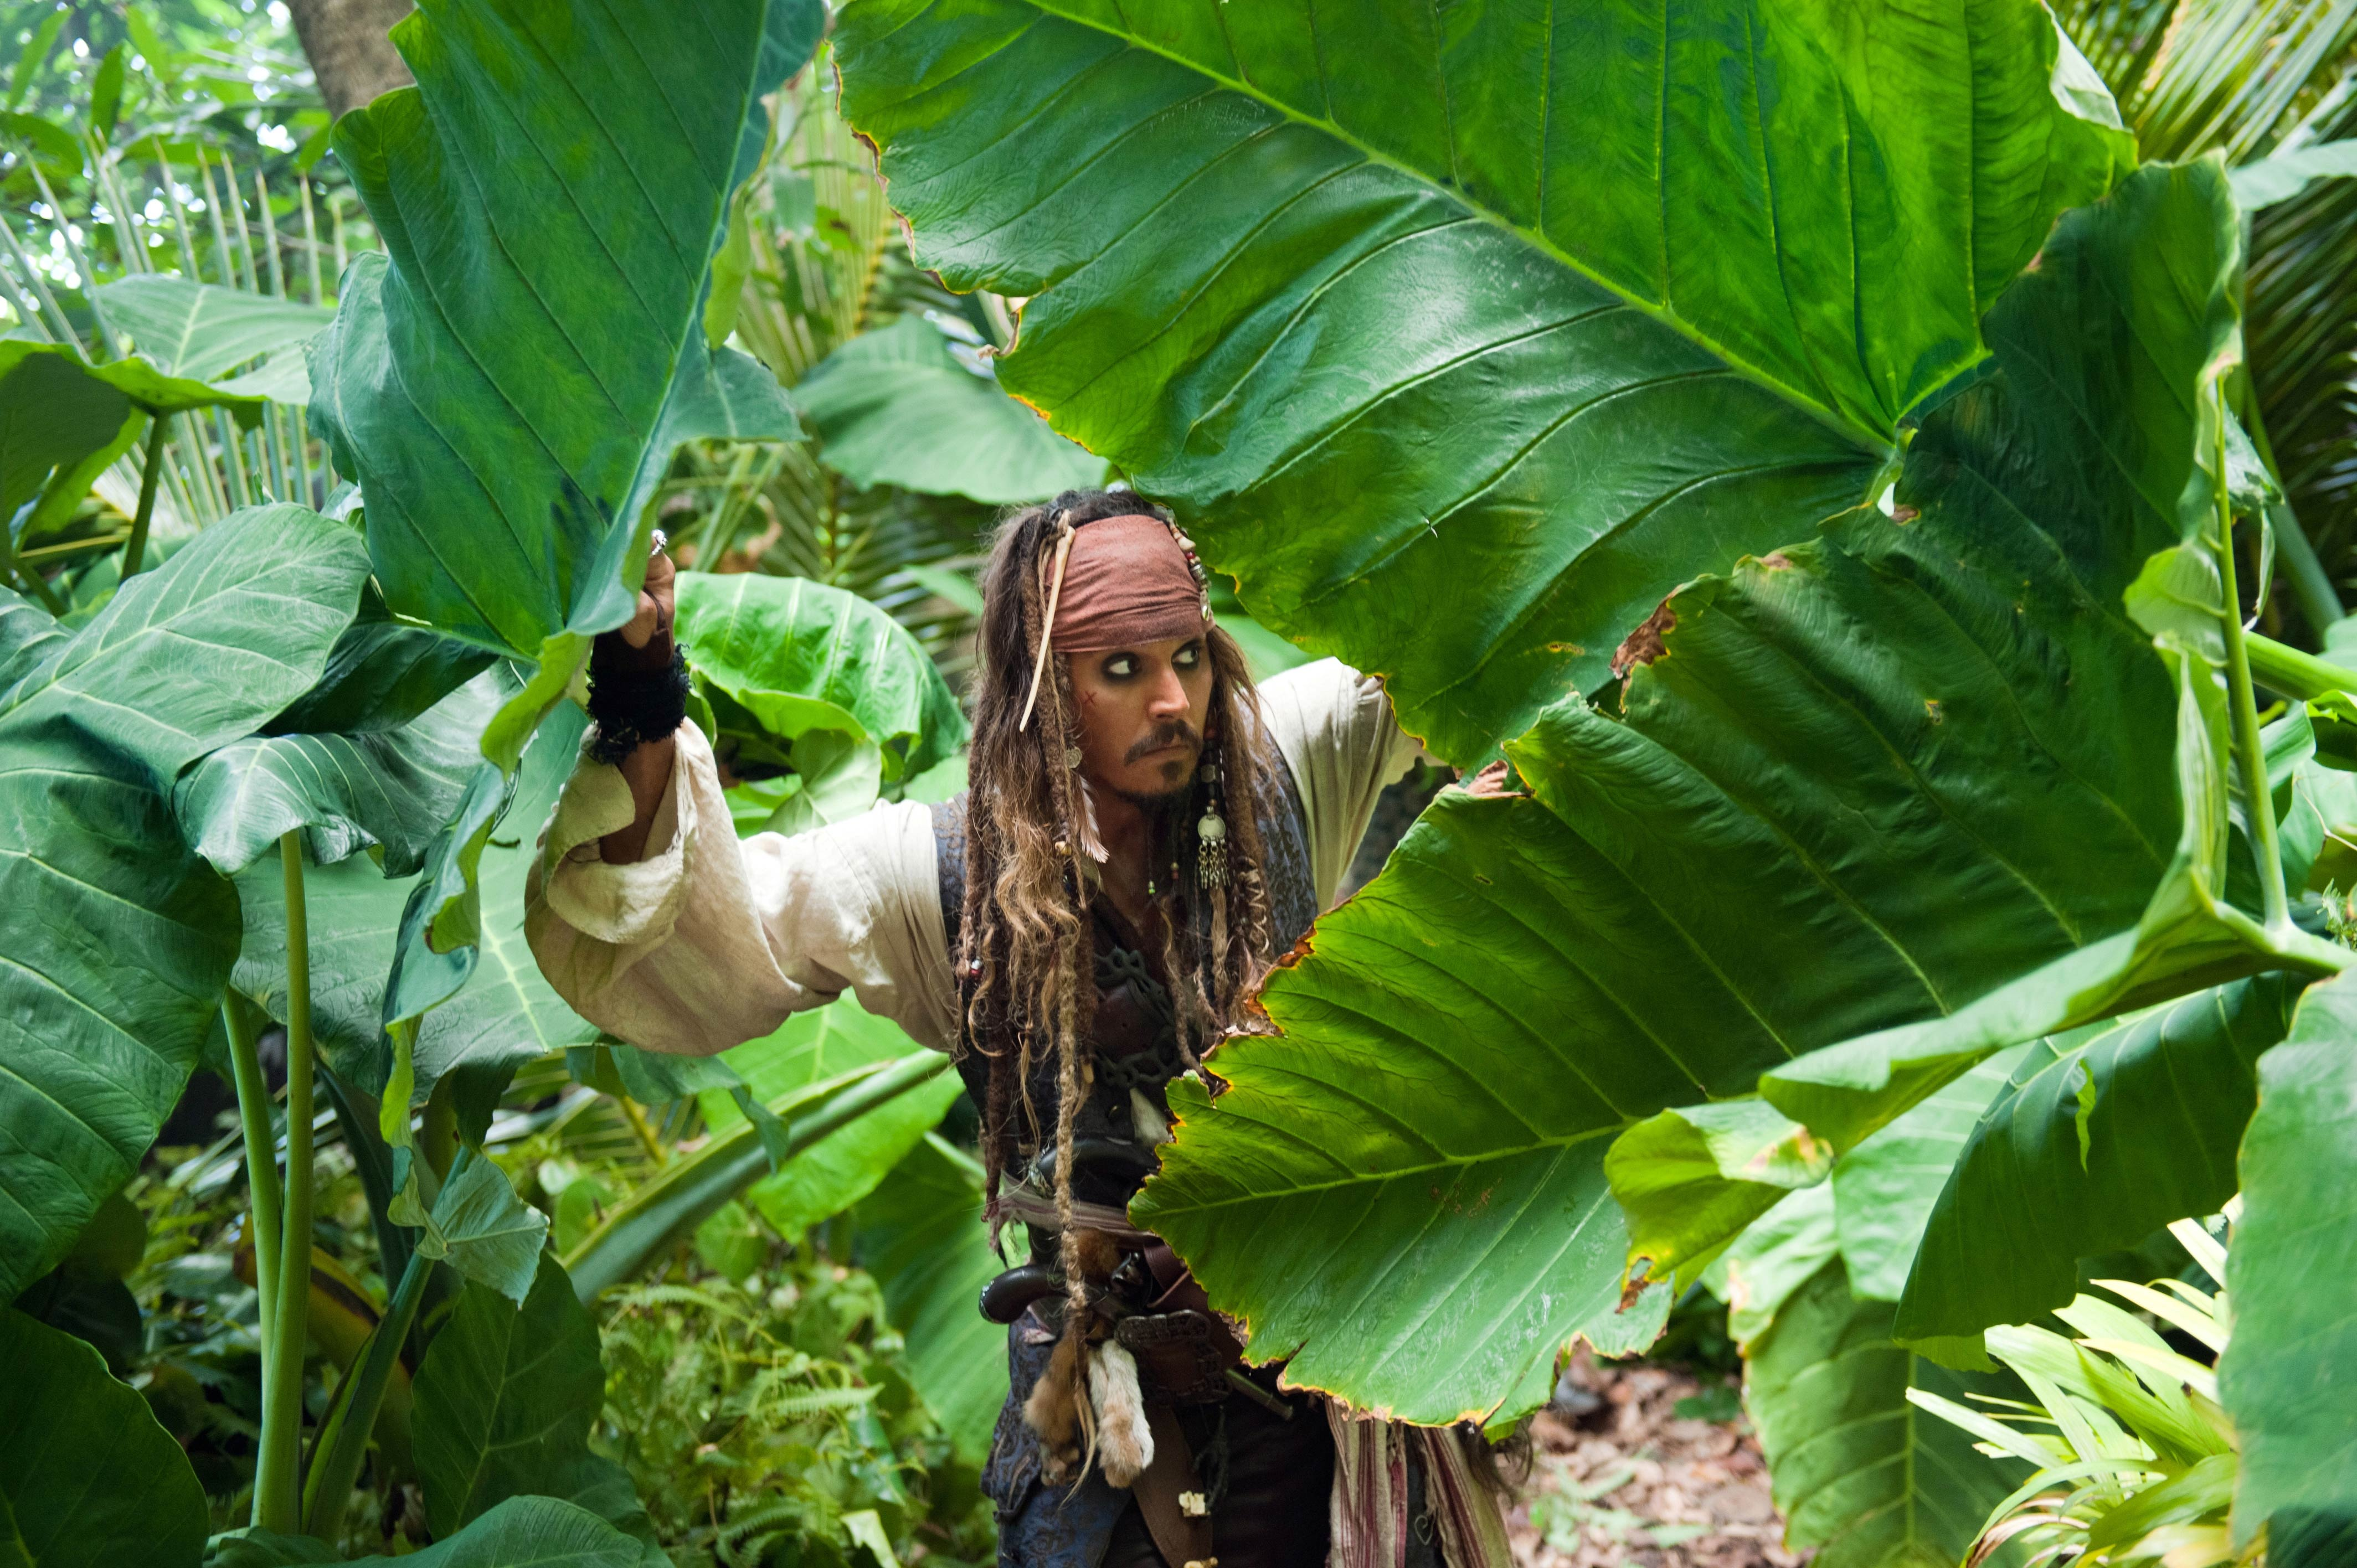 Captain Jack Sparrow From Pirates Of The Caribbean - Captain Jack Sparrow Stranger Tides , HD Wallpaper & Backgrounds